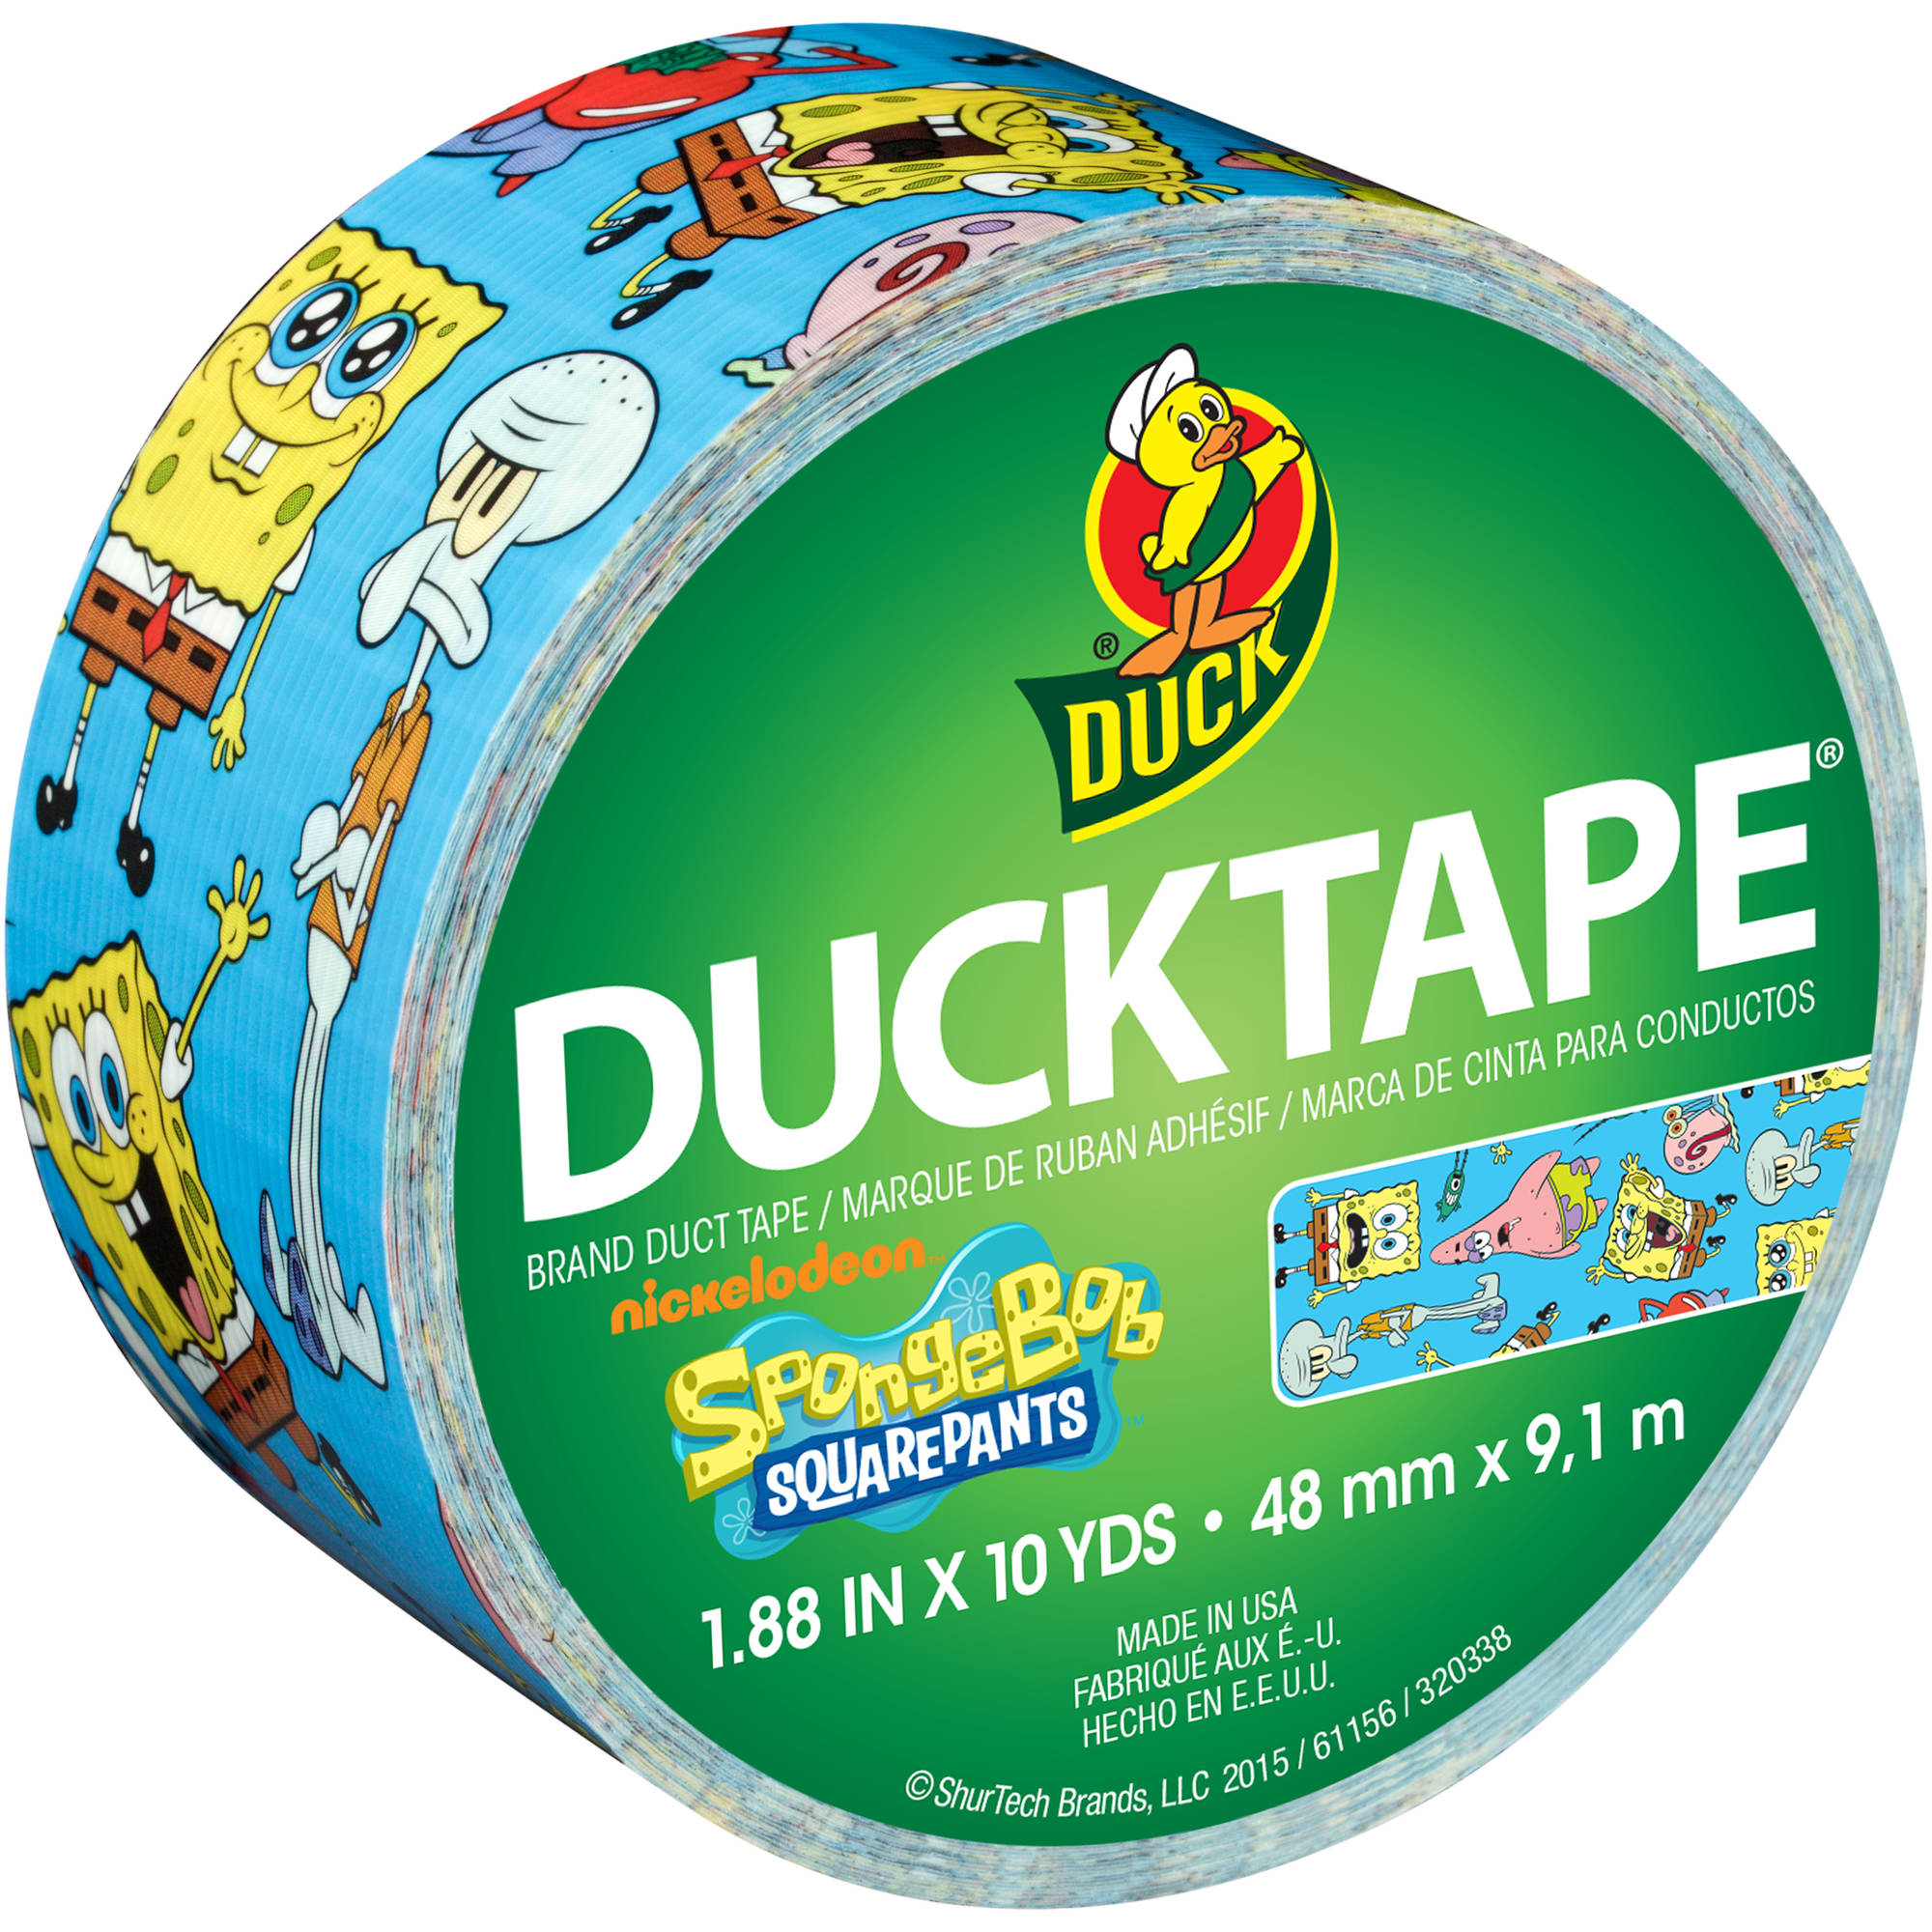 "Duck Brand Duct Tape, 1.88"" x 10 Yards, SpongeBob SquarePants Duct Tape"